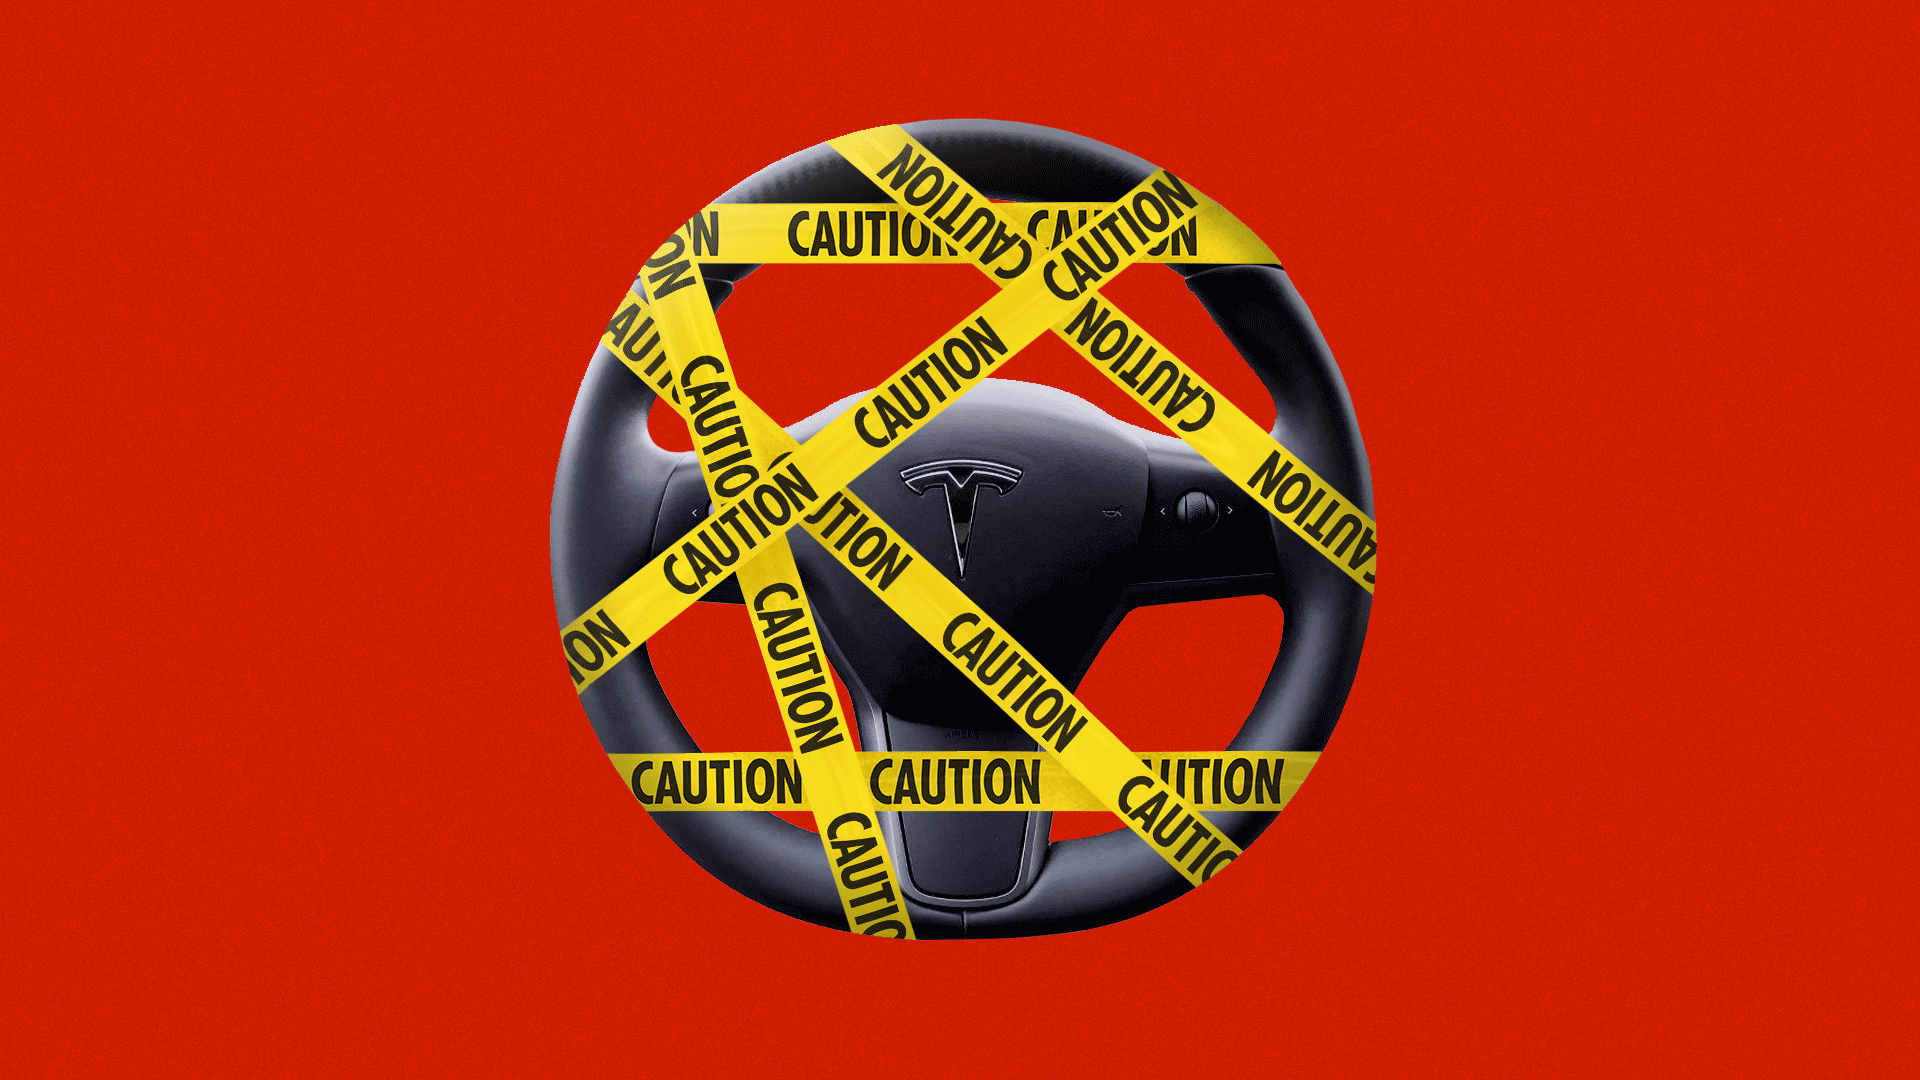 Illustration of a Tesla steering wheel covered in caution tape.